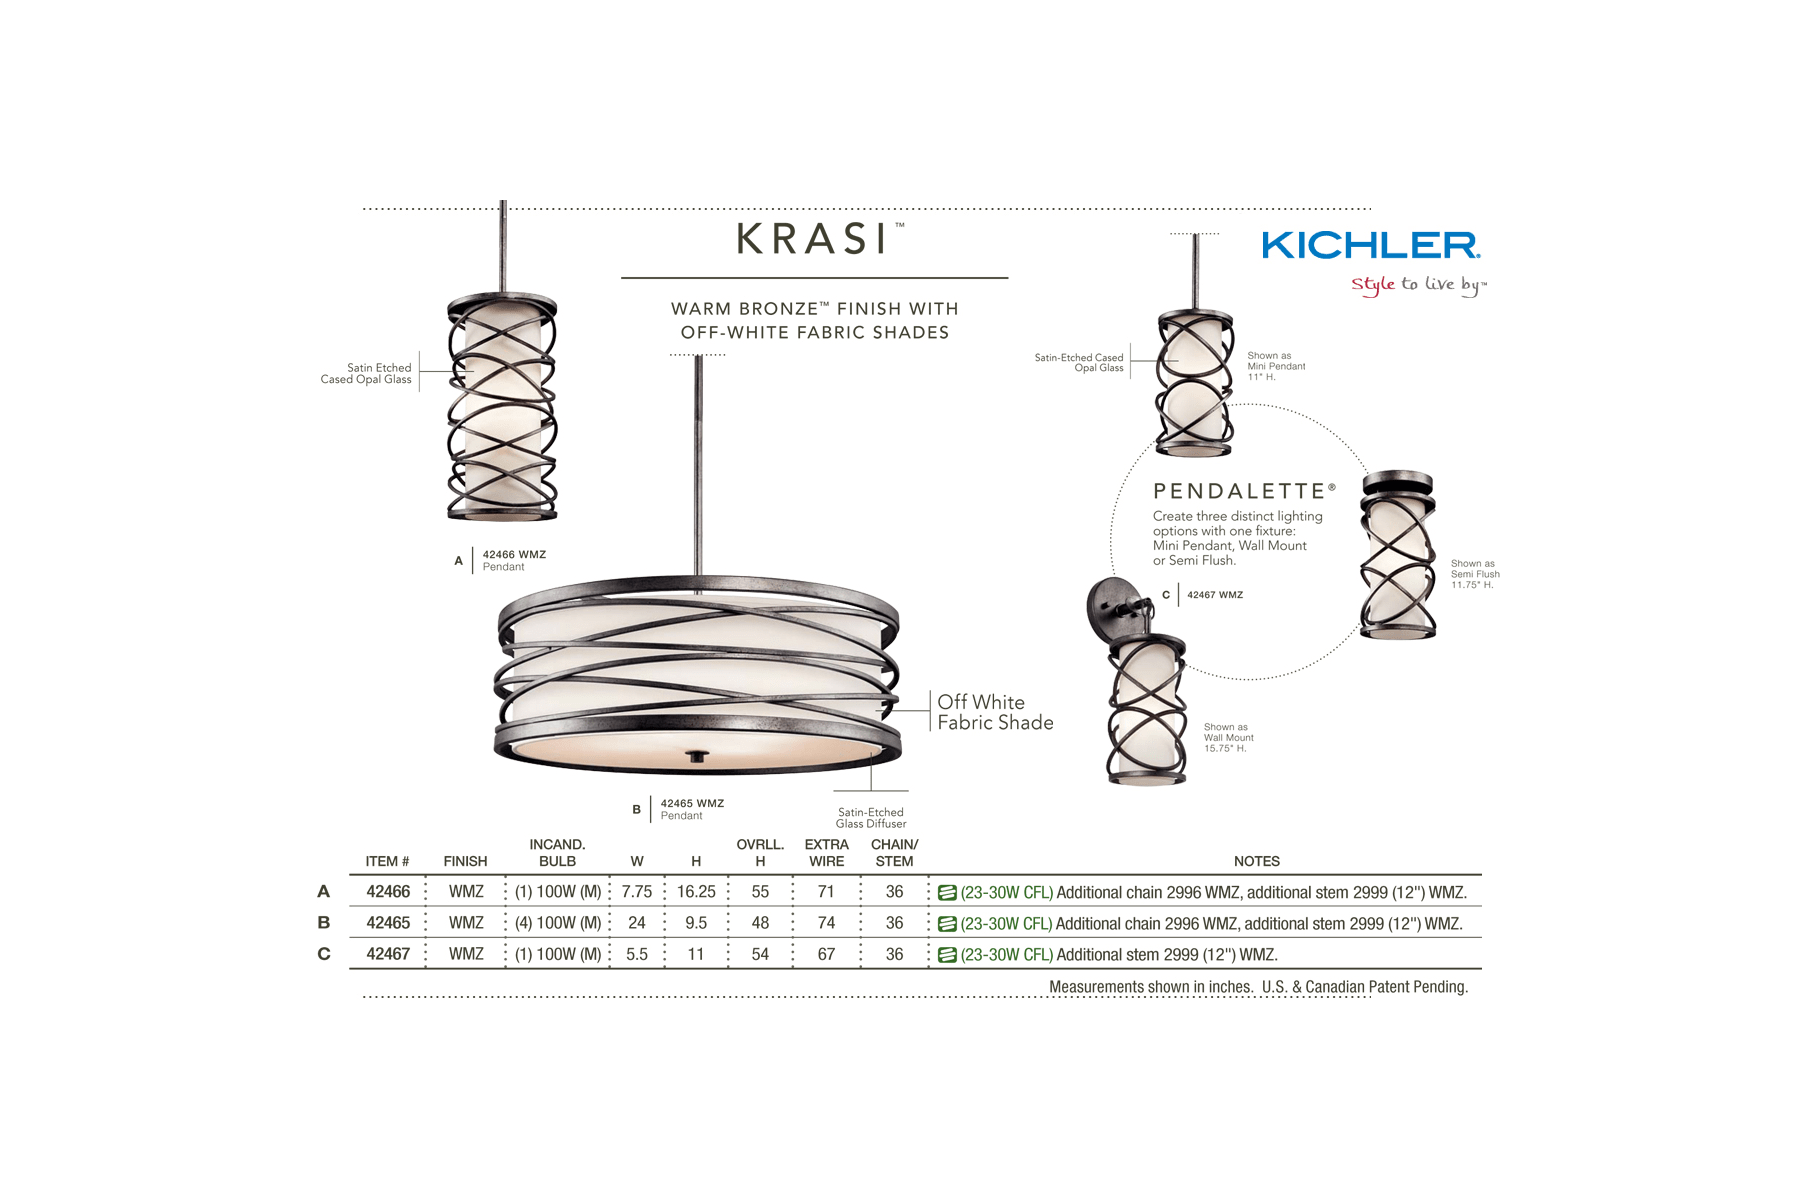 Kichler 42466wmz Krasi Single Bulb Indoor Pendant With Cylindrical Wiring Diagram Glass Shade Warm Bronze